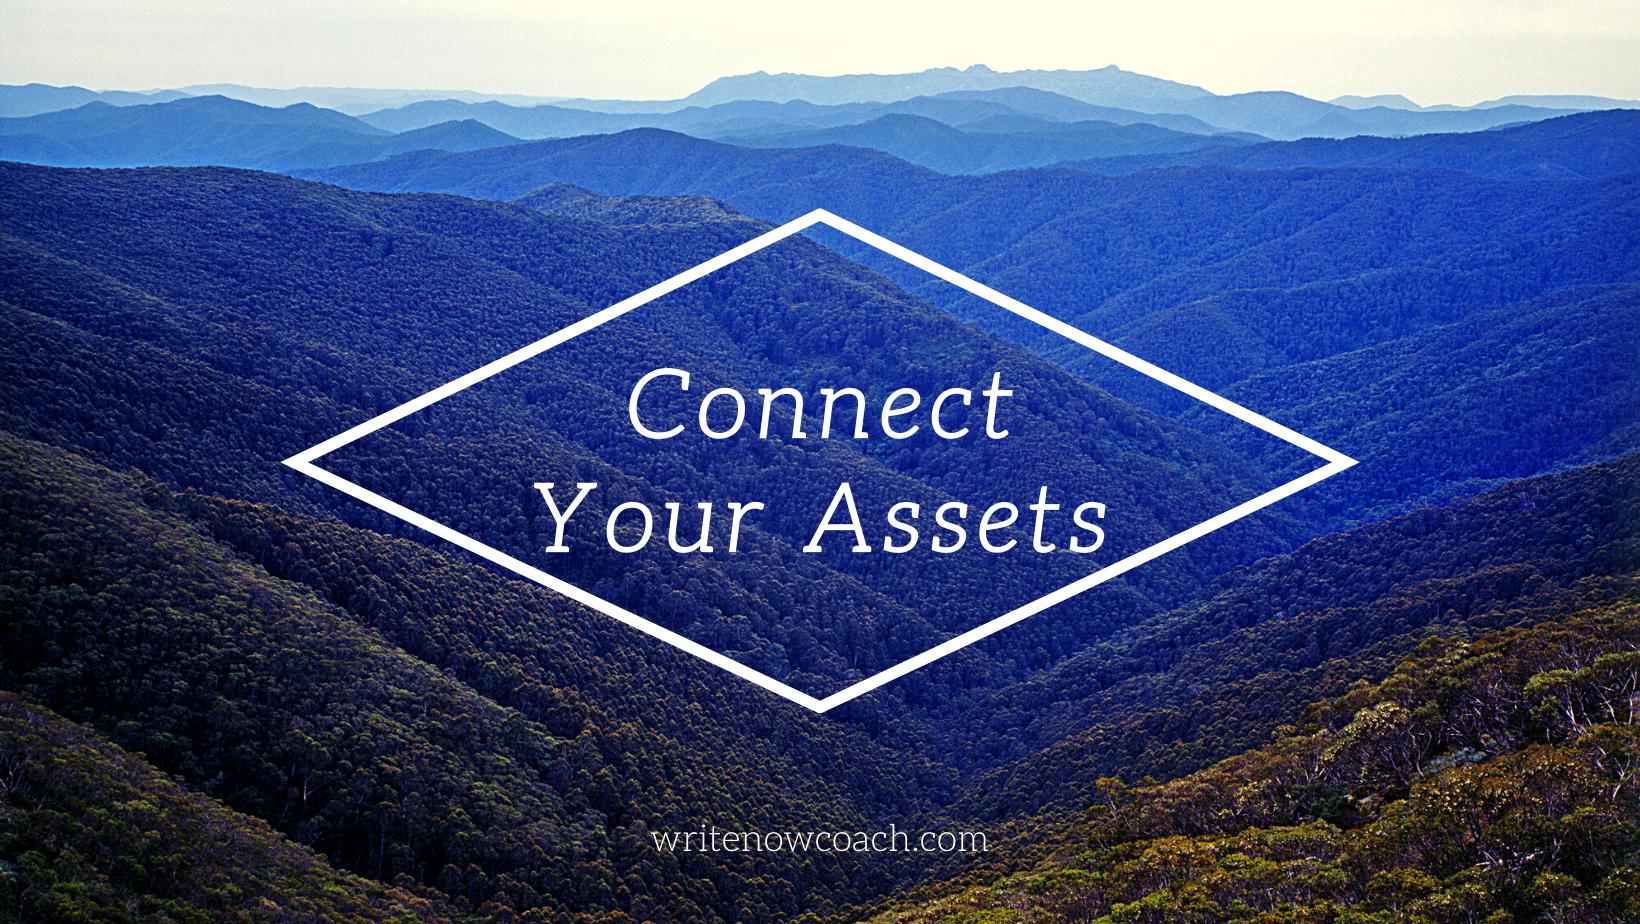 Connect Your Assets